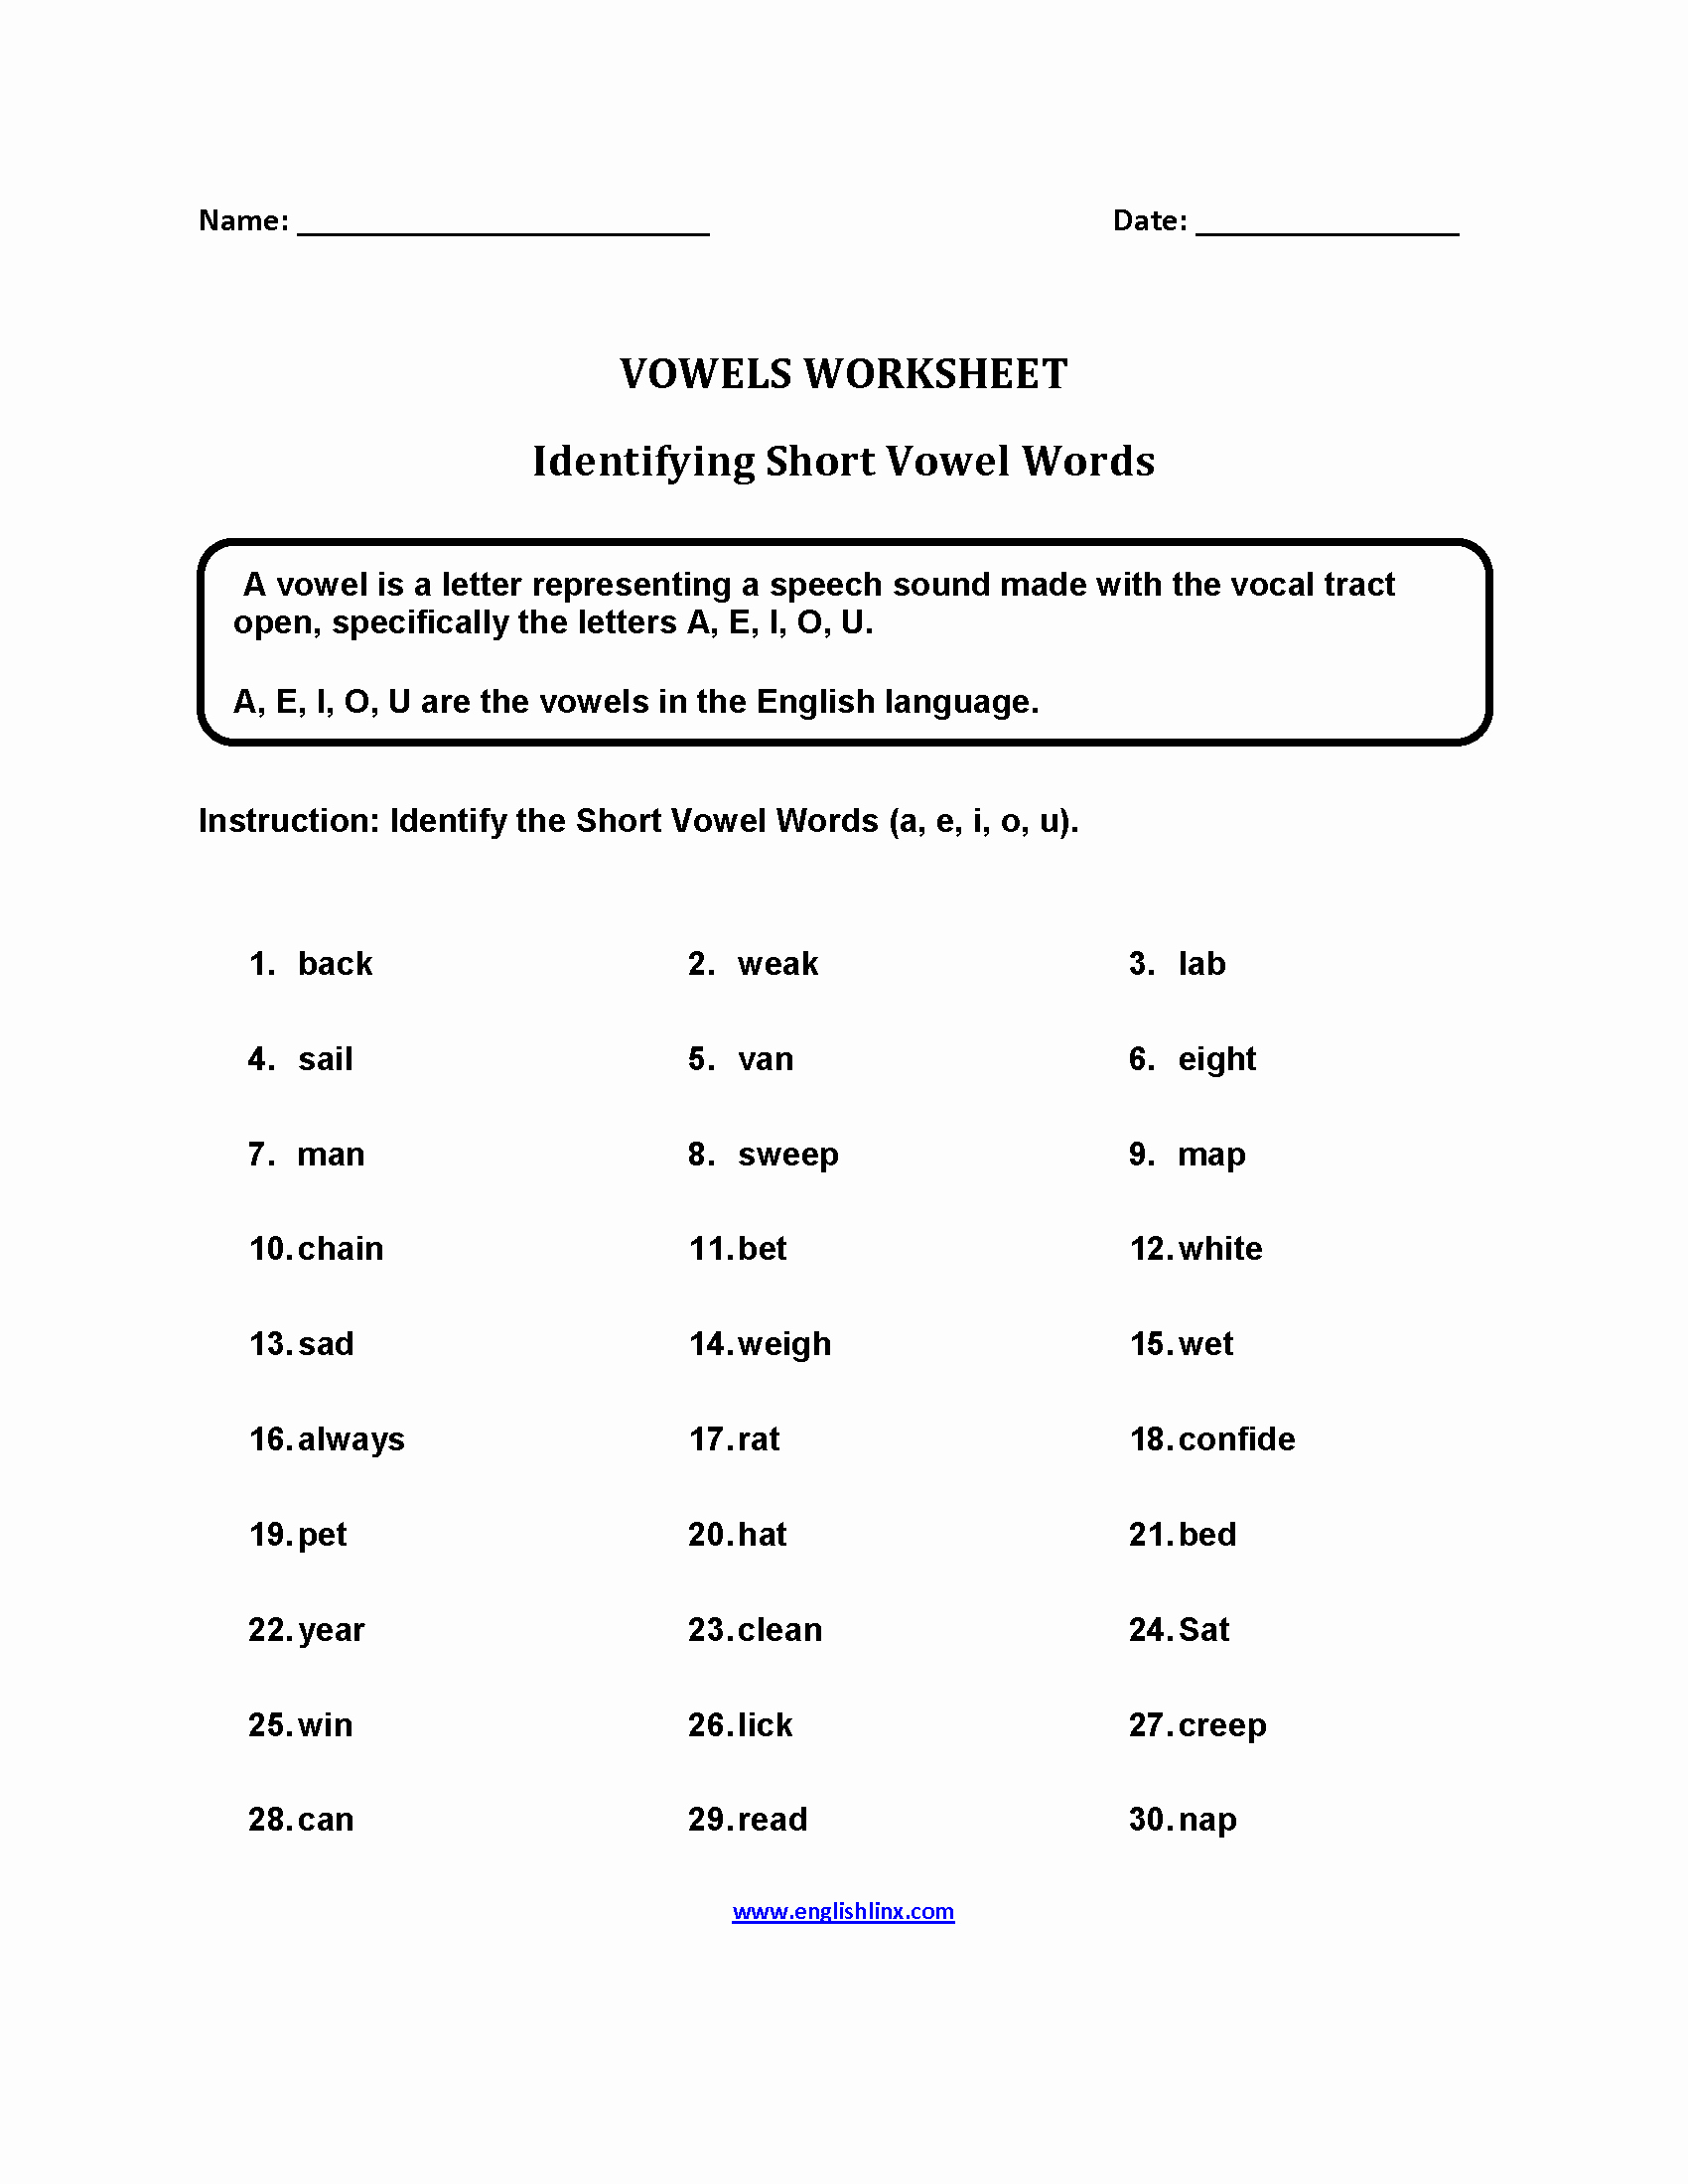 Short and Long Vowels Worksheet Best Of Short Vowel Words Worksheets Long and Short